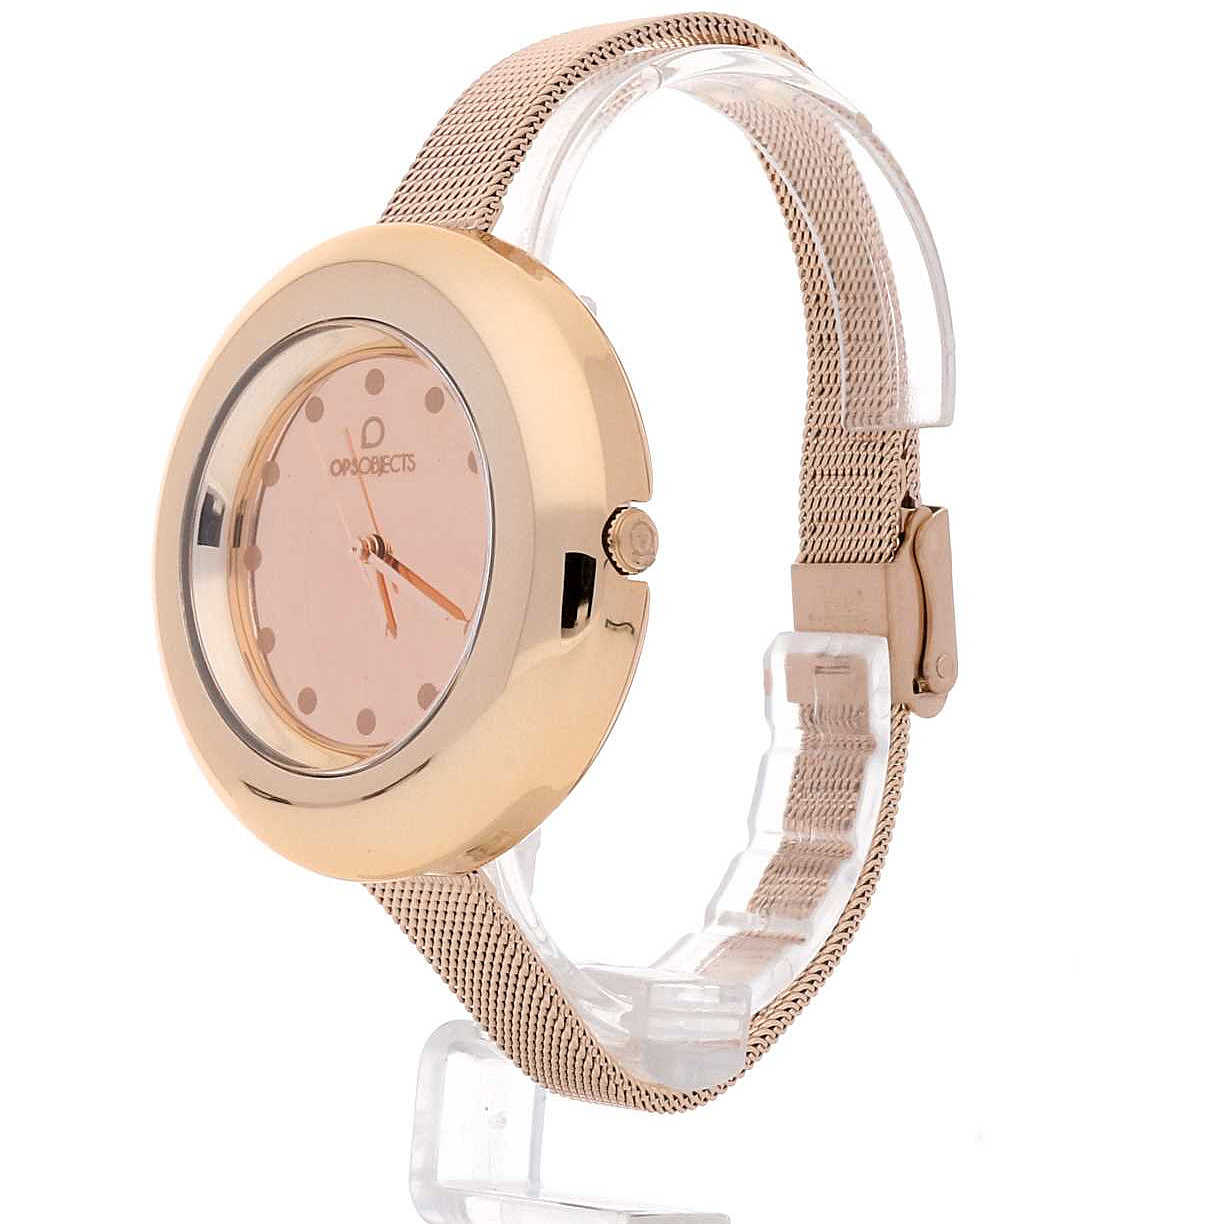 Orologio Solo Tempo Donna Ops Objects Lux Edition OPSPW 334